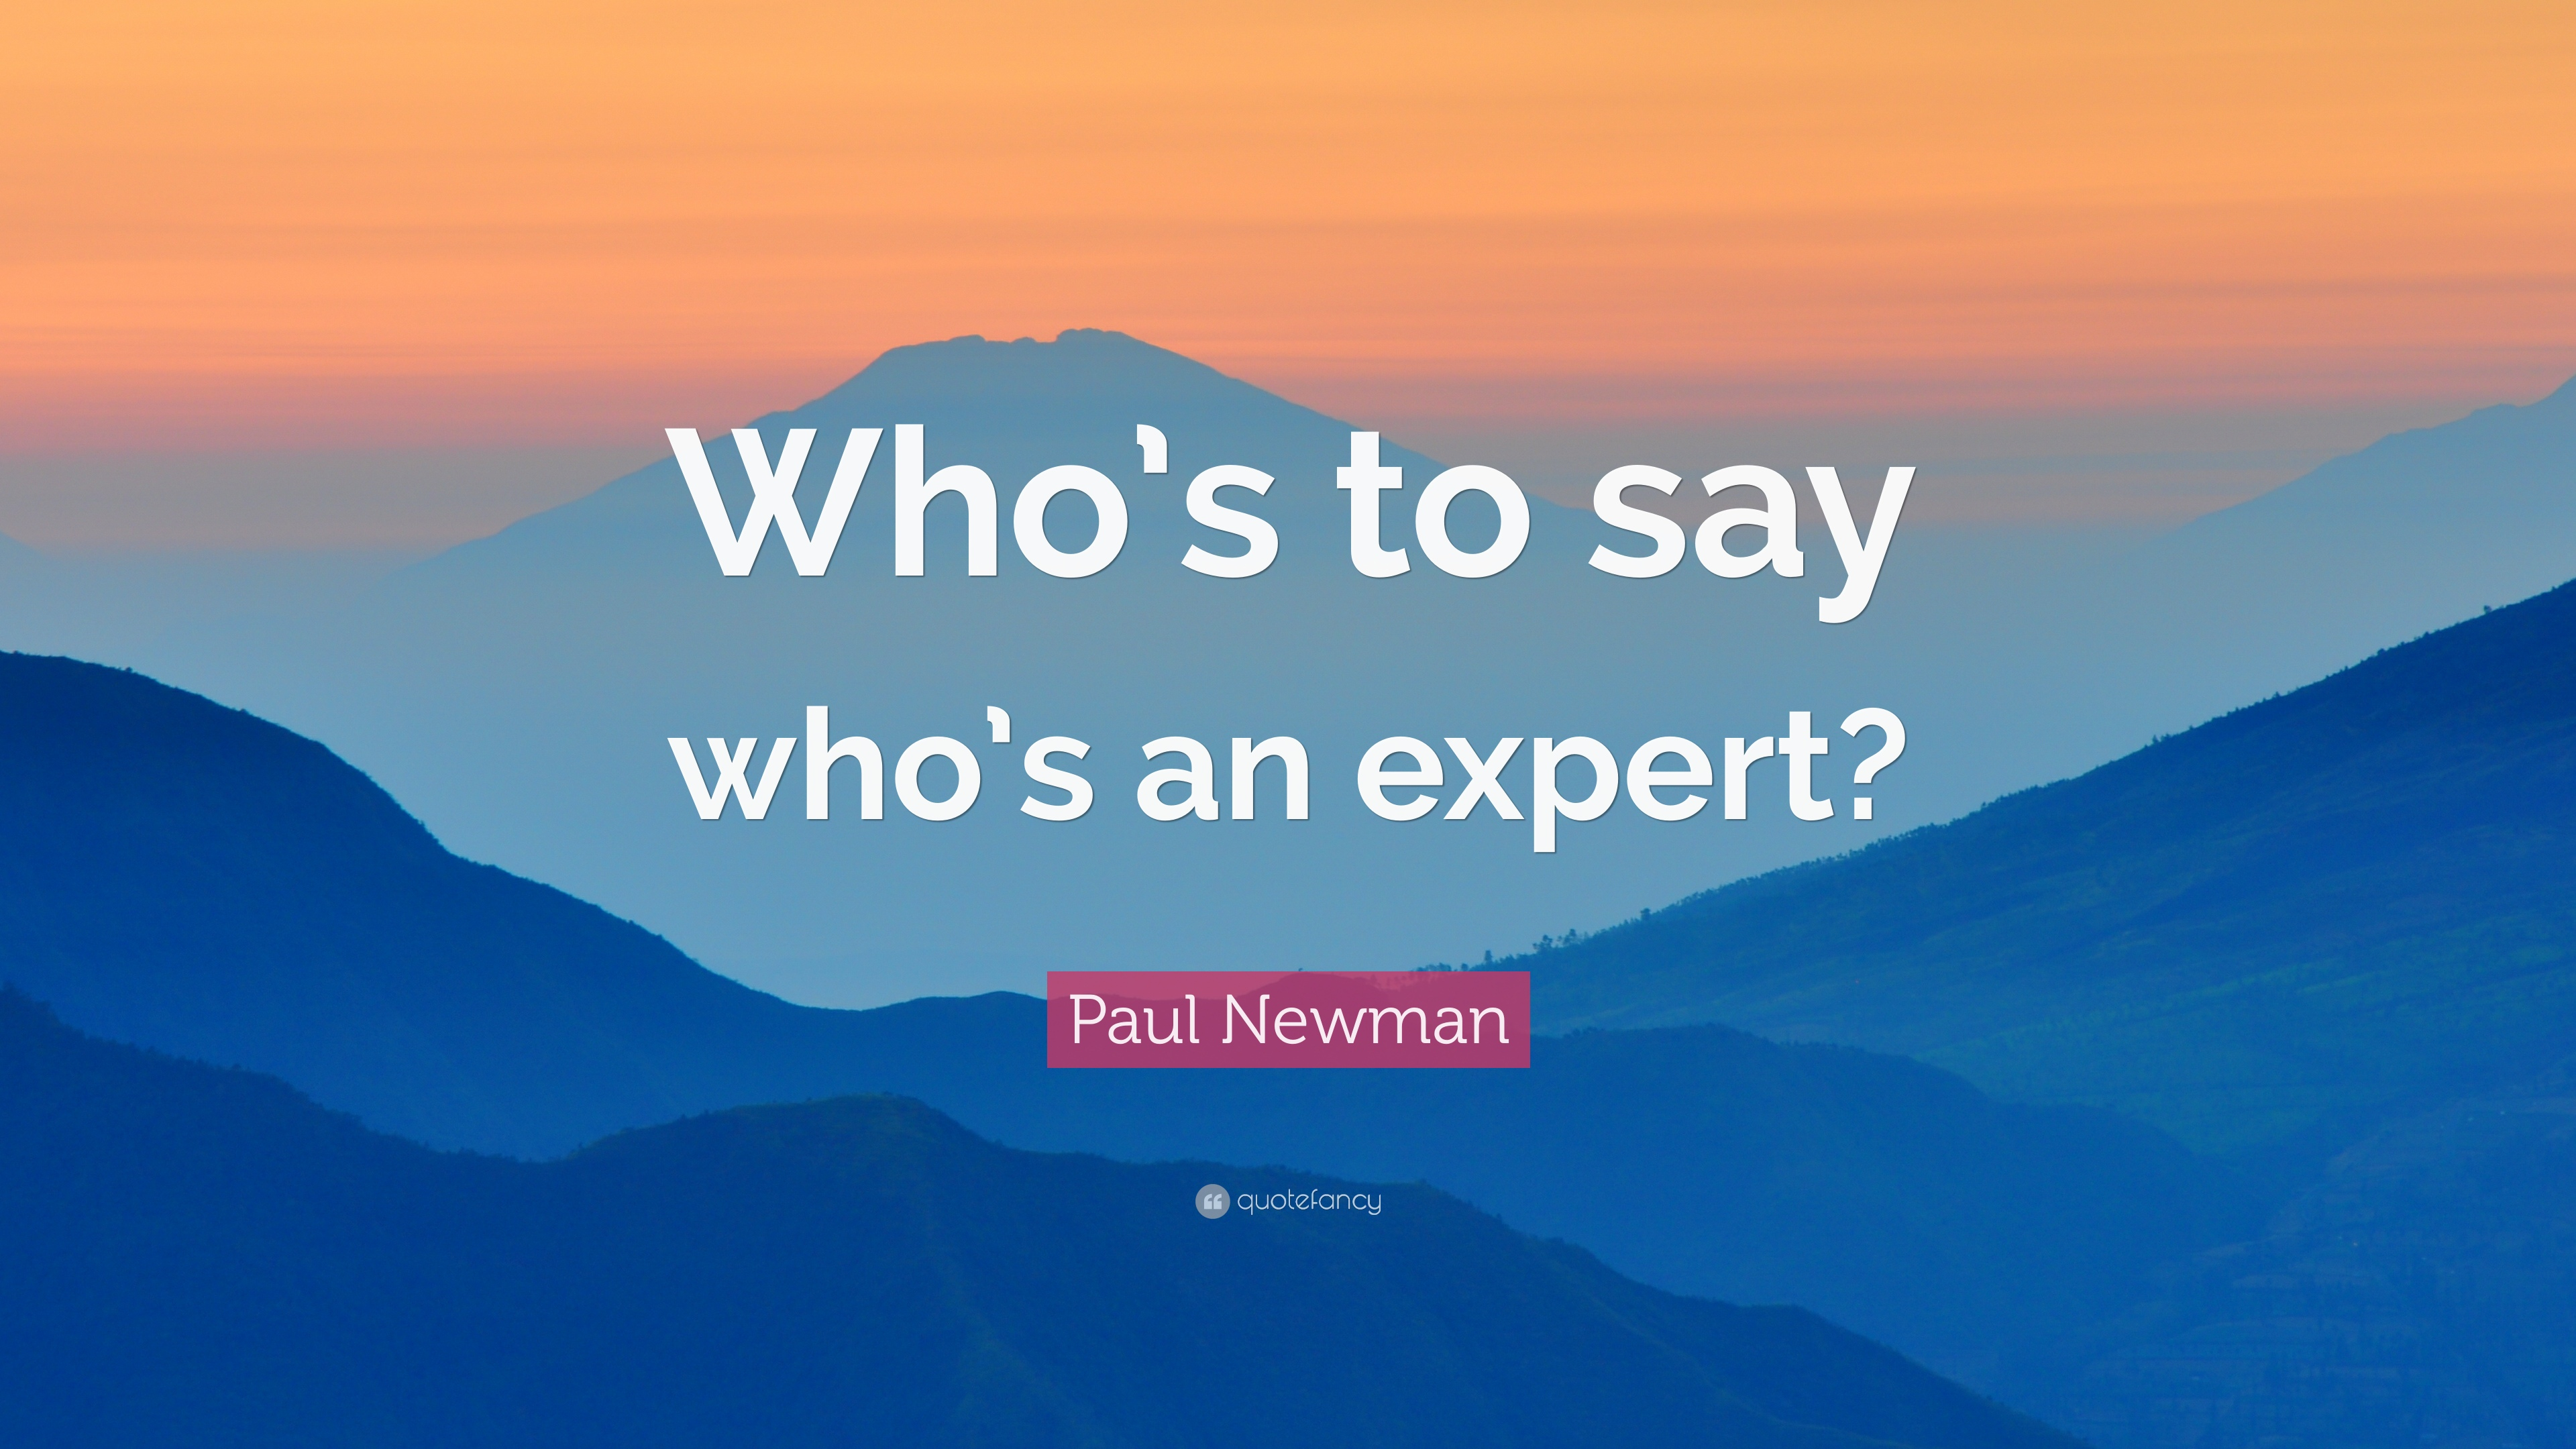 """Paul Newman Quote: """"Who's to say who's an expert?"""" (7 wallpapers) -  Quotefancy"""